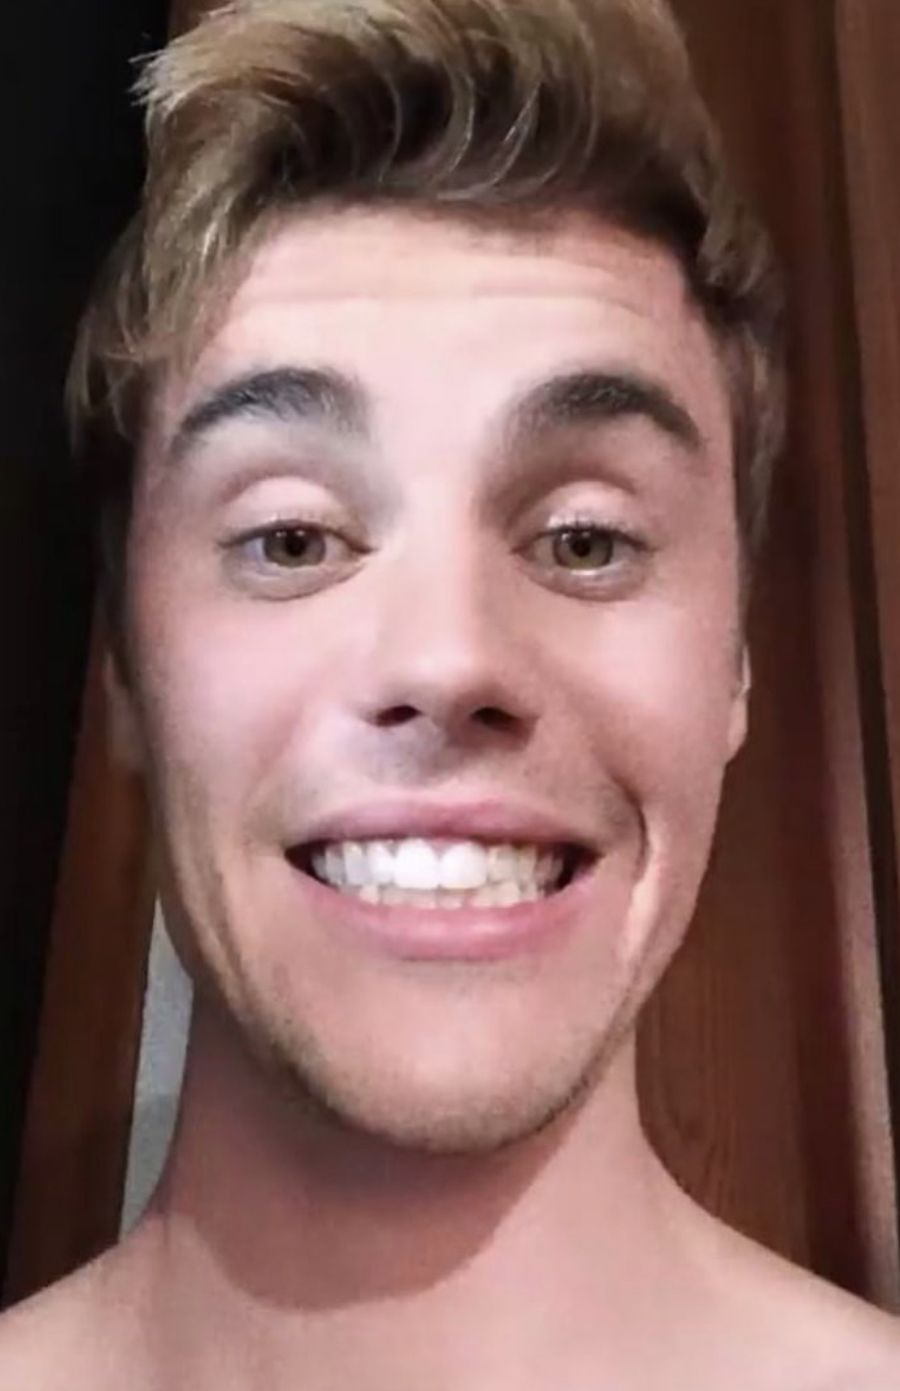 Pin by 'aso on ˗ˏˋ Justin Bieber ˎˊ˗ | Justin bieber ...